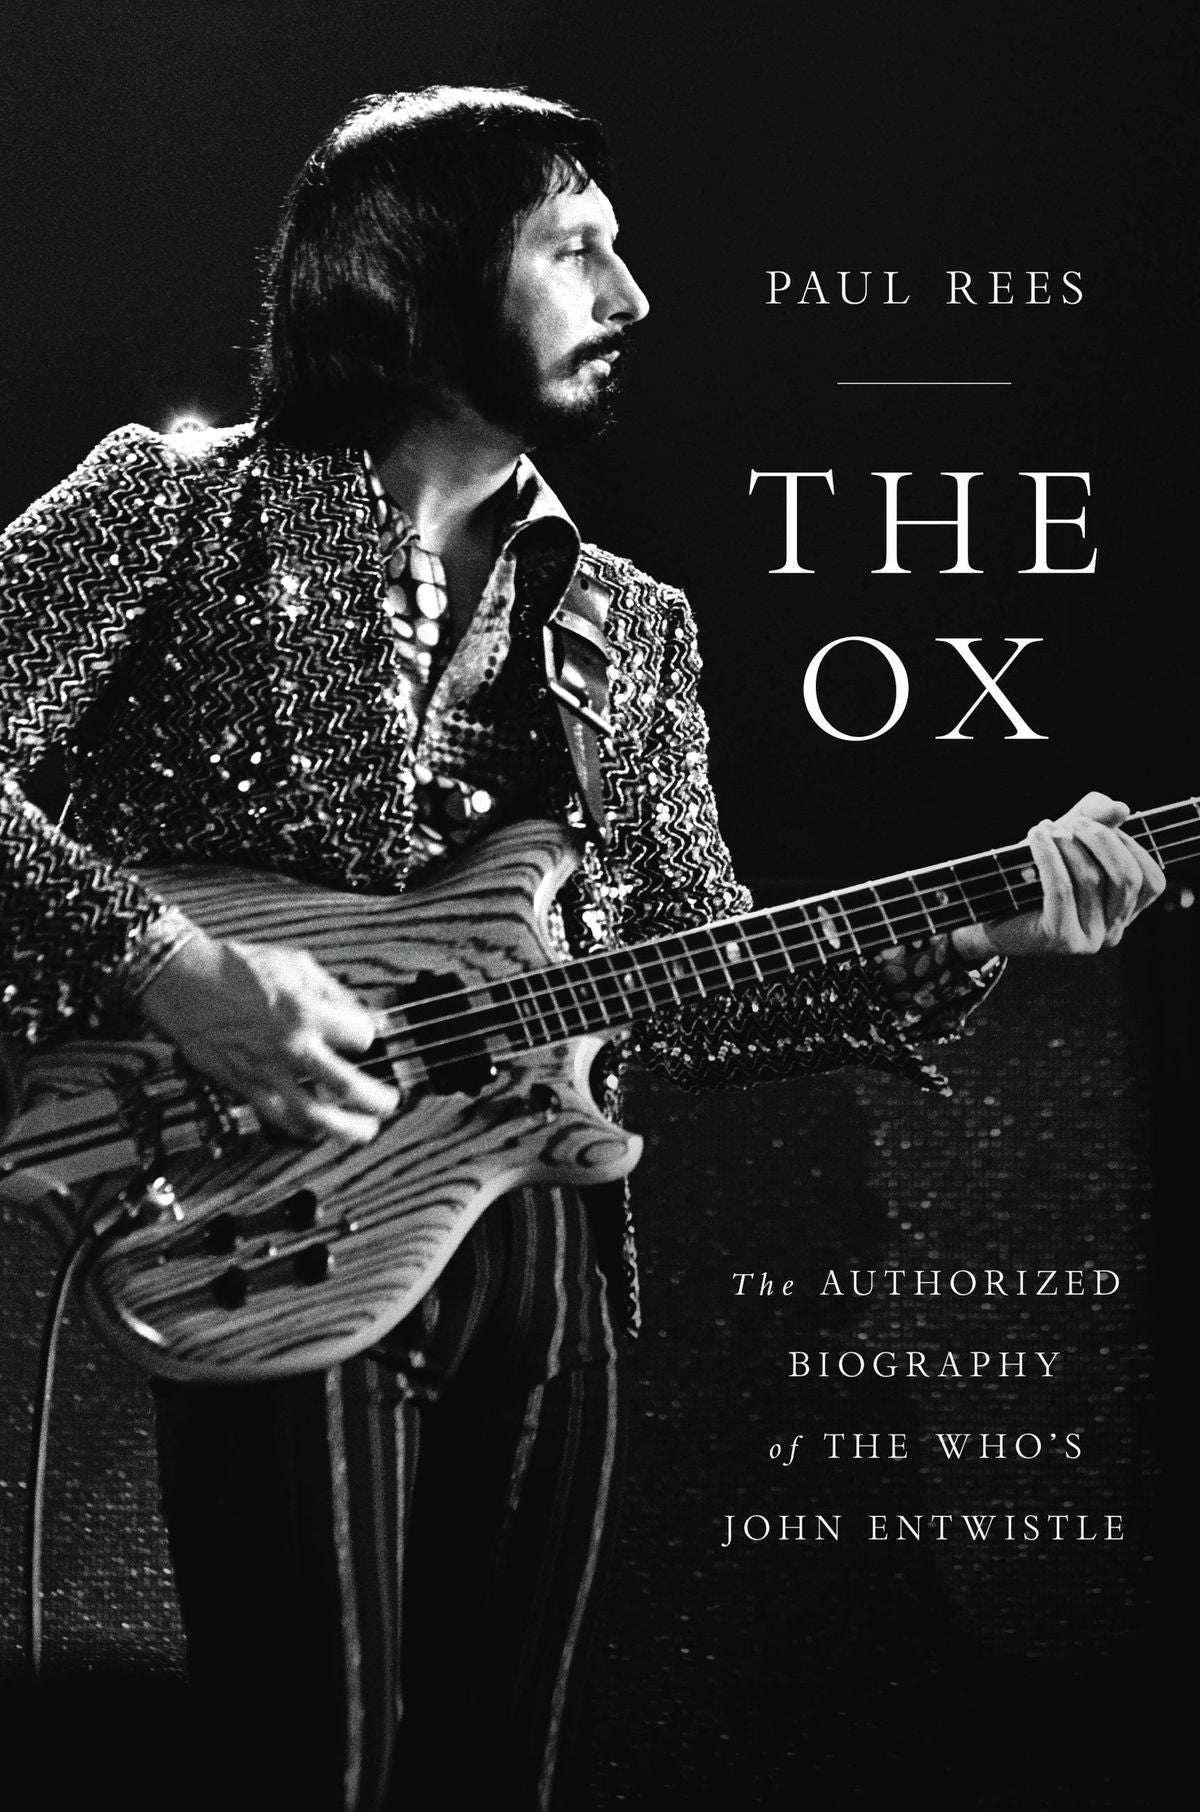 The Ox: The Authorized Biography of The Who's John Entwistle by Paul Rees